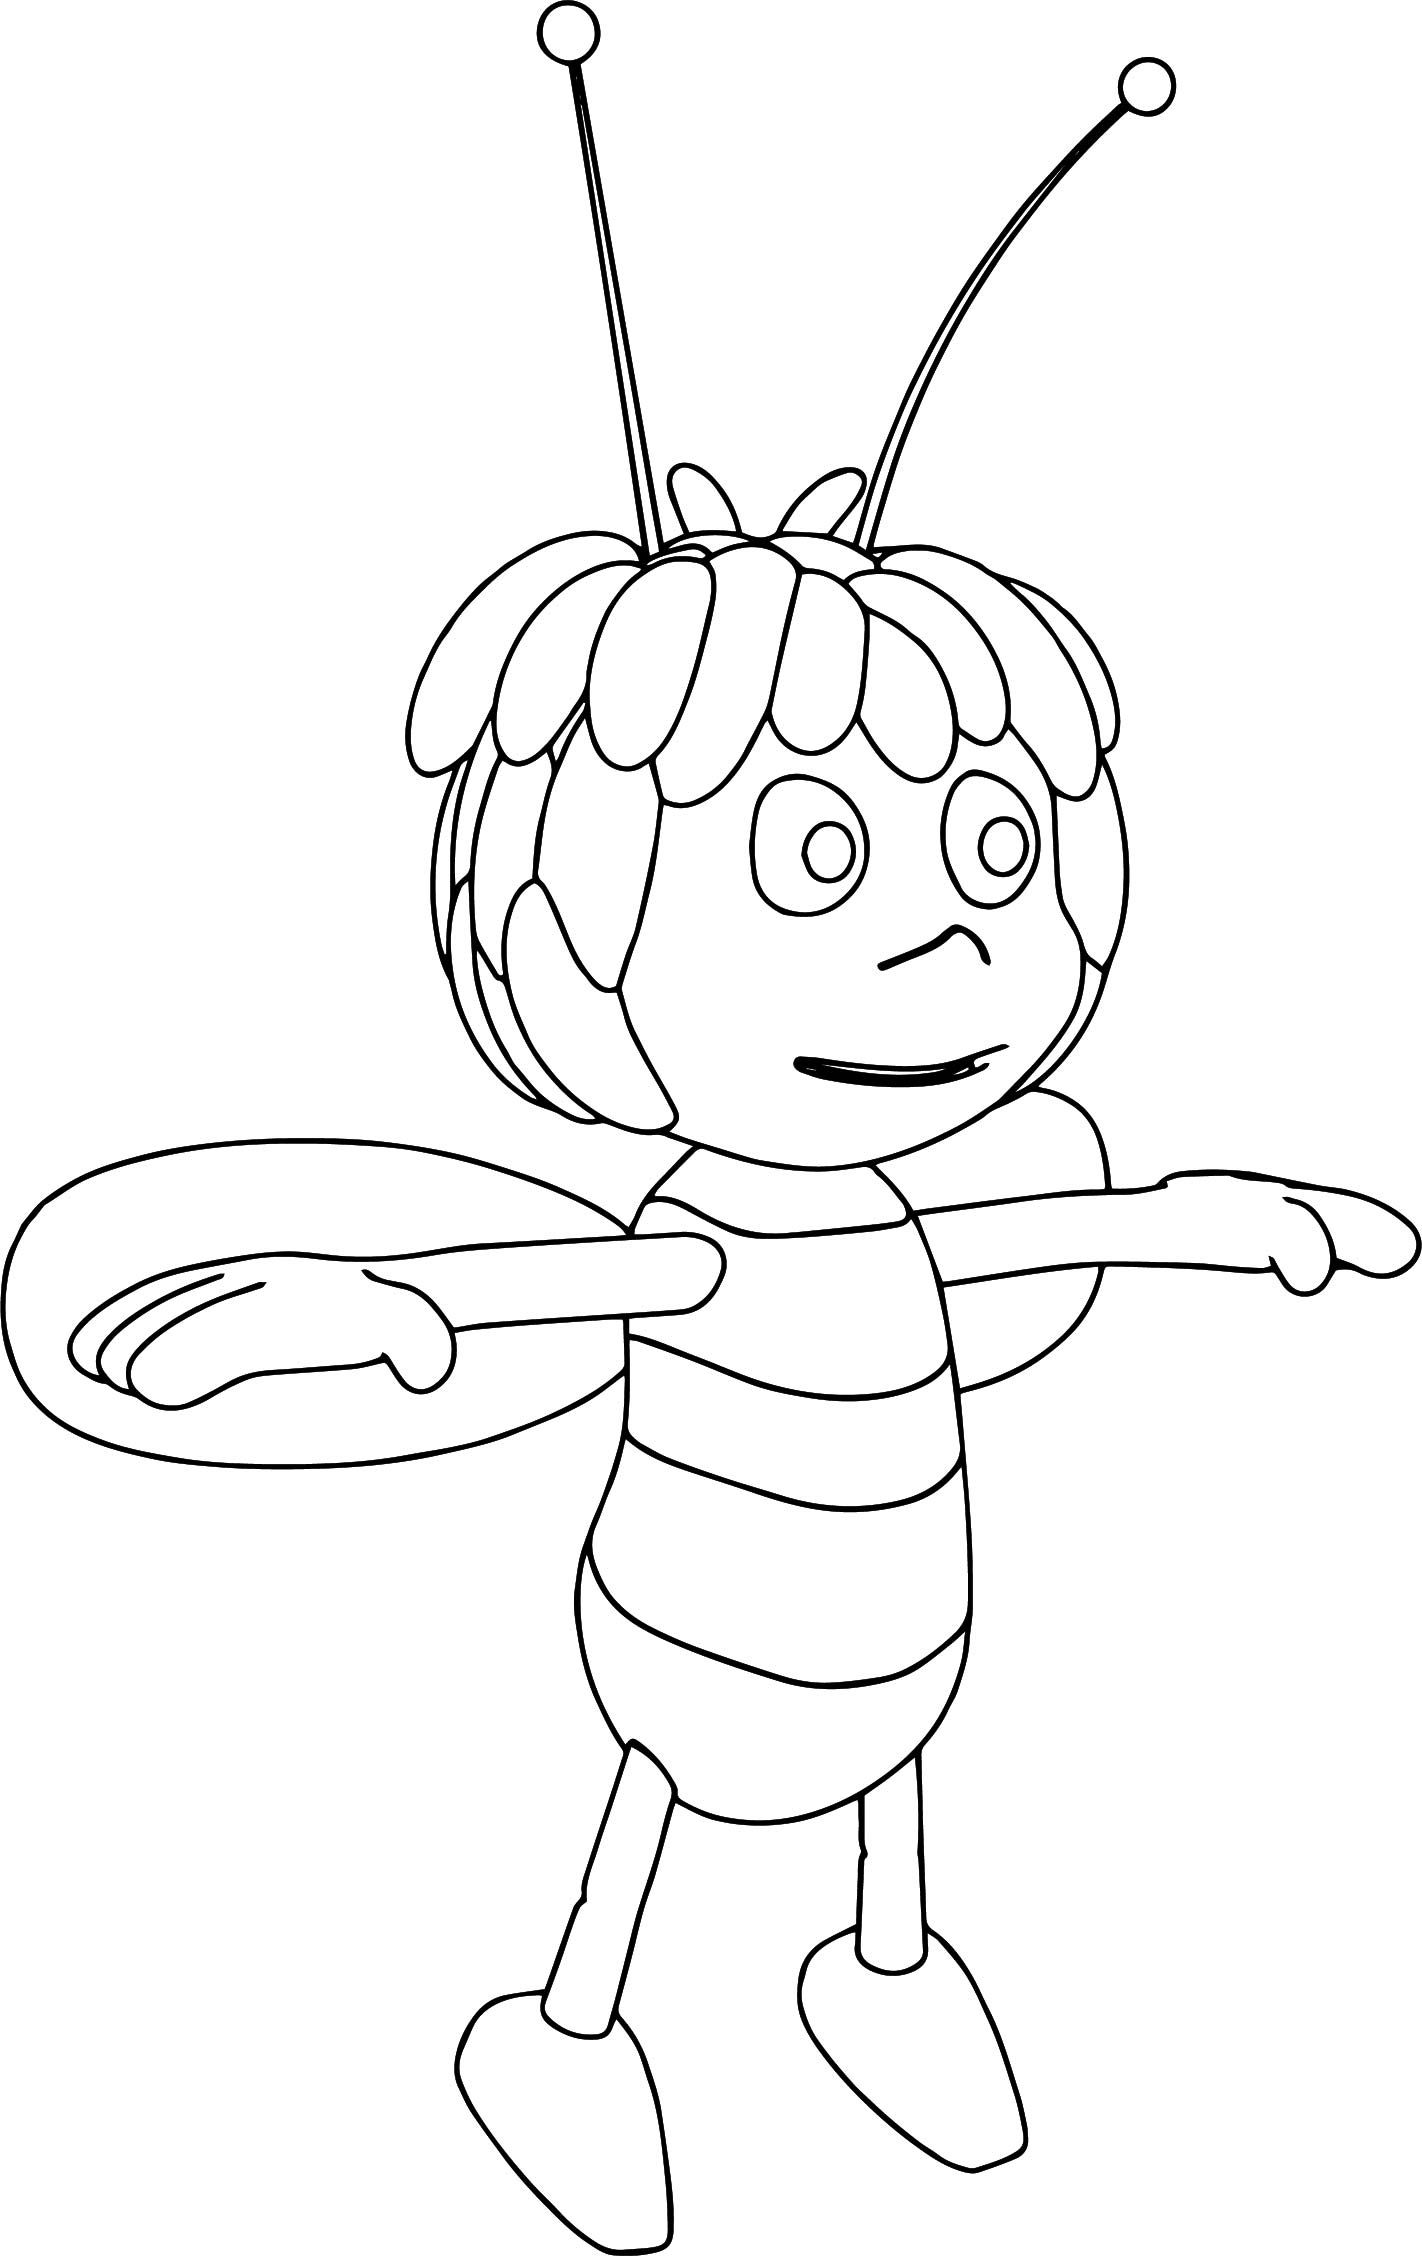 Maya Bee Coloring Pages Designs Trend